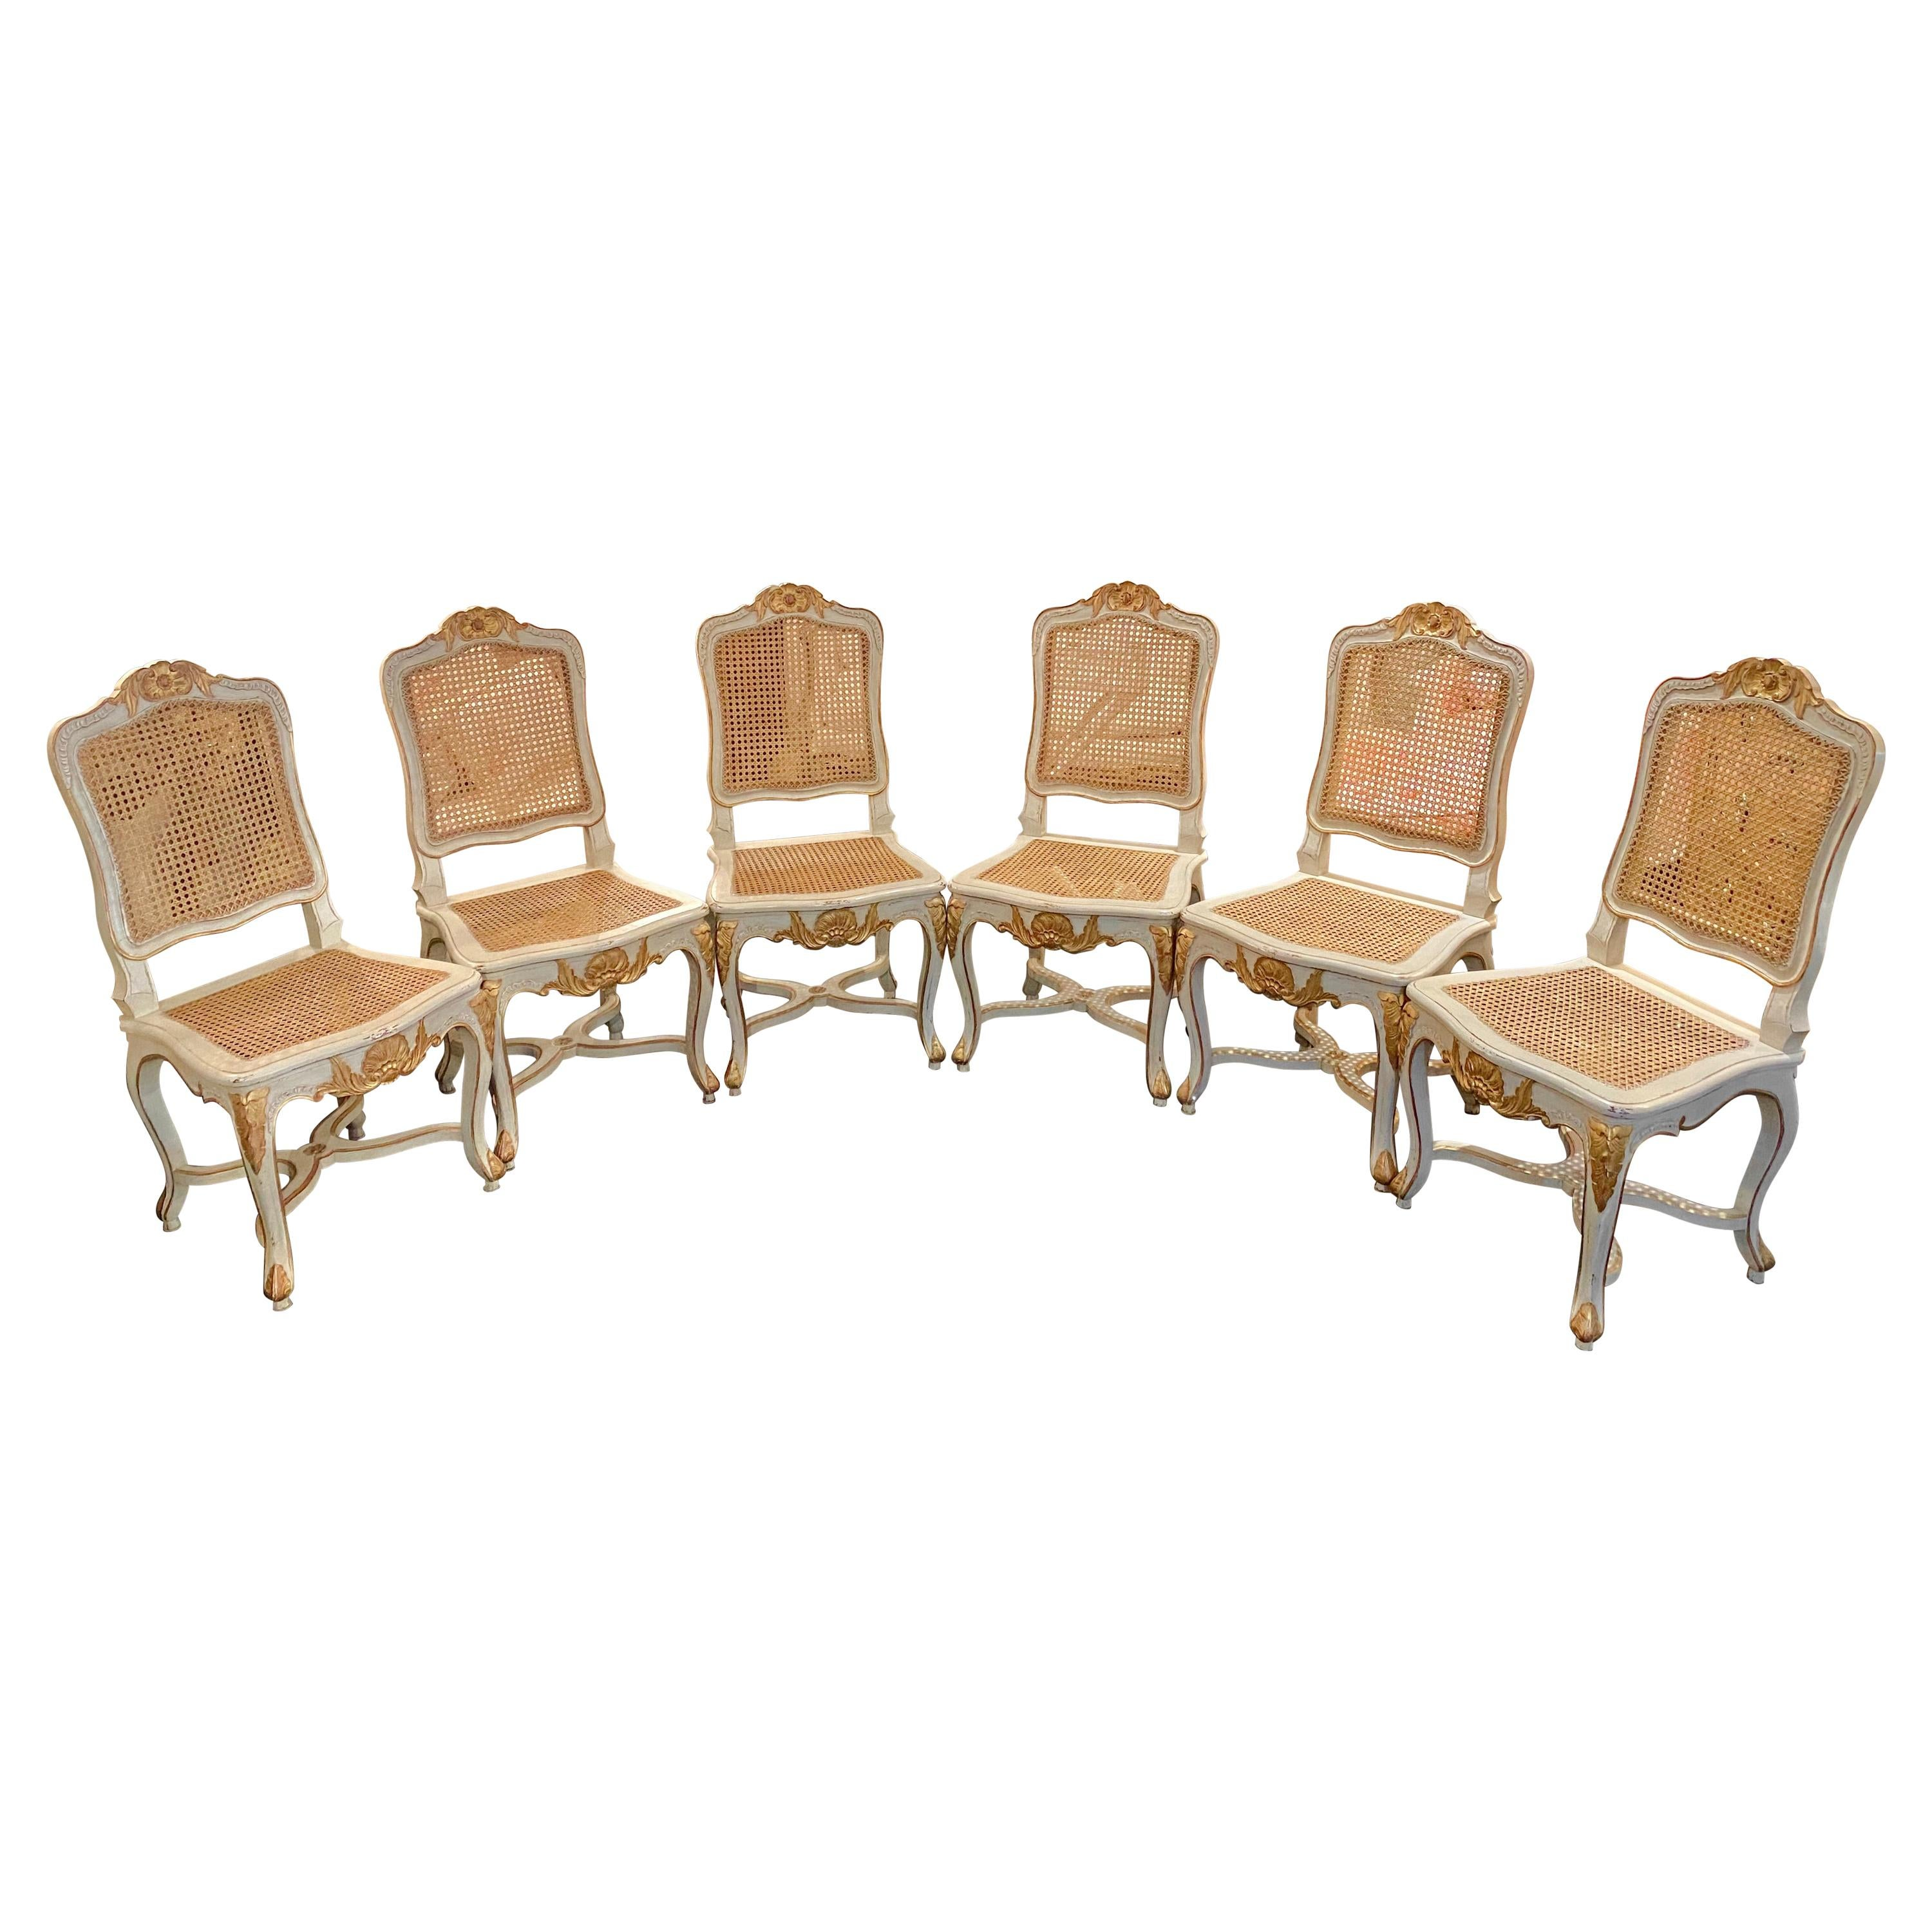 French, Louis XV Style caned Chairs, Set of Six